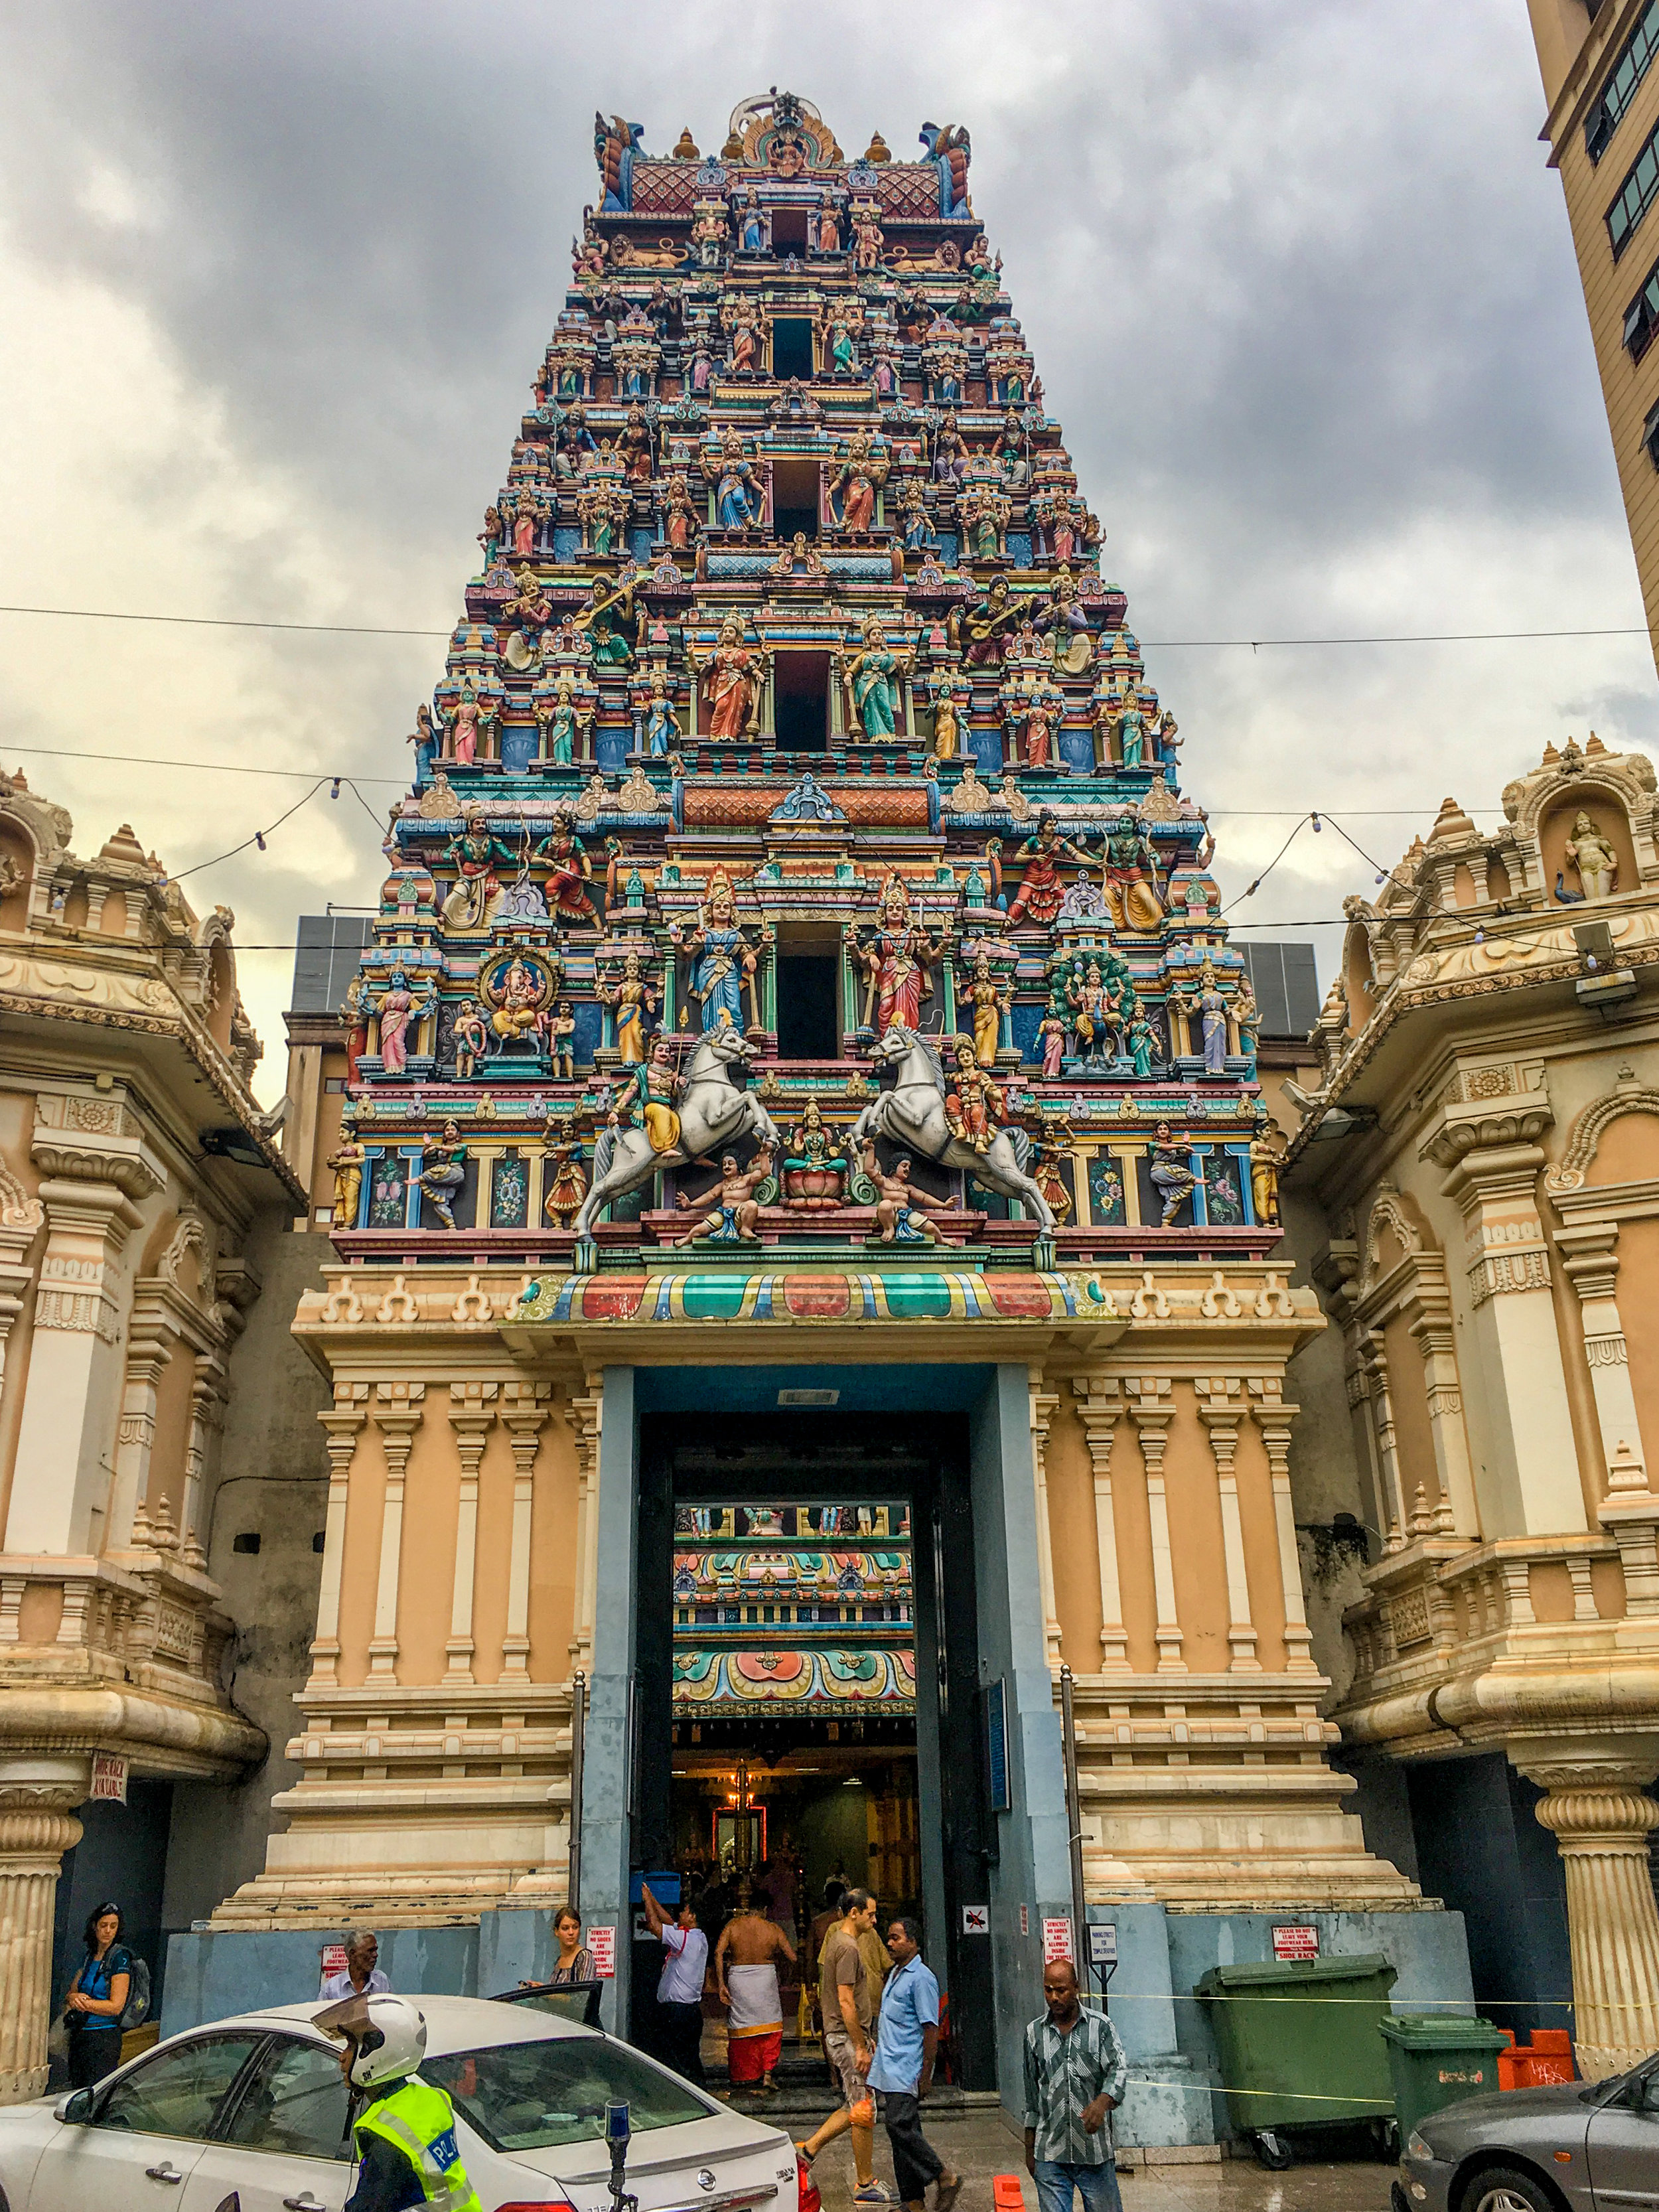 The largest Hindu temple in KL